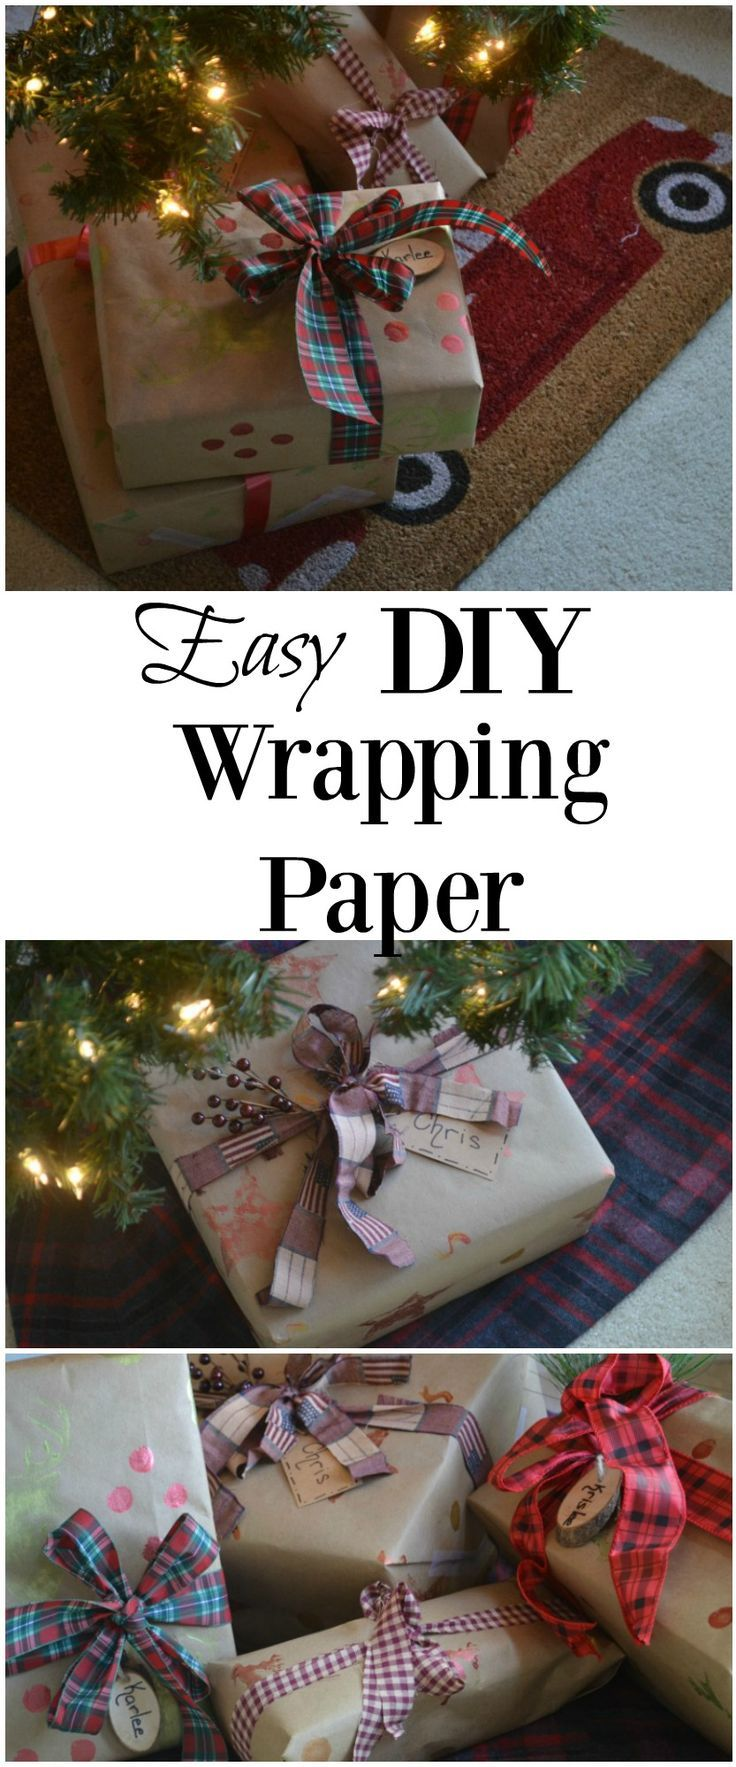 DIY custom wrapping paper with this easy tutorial.  #ad